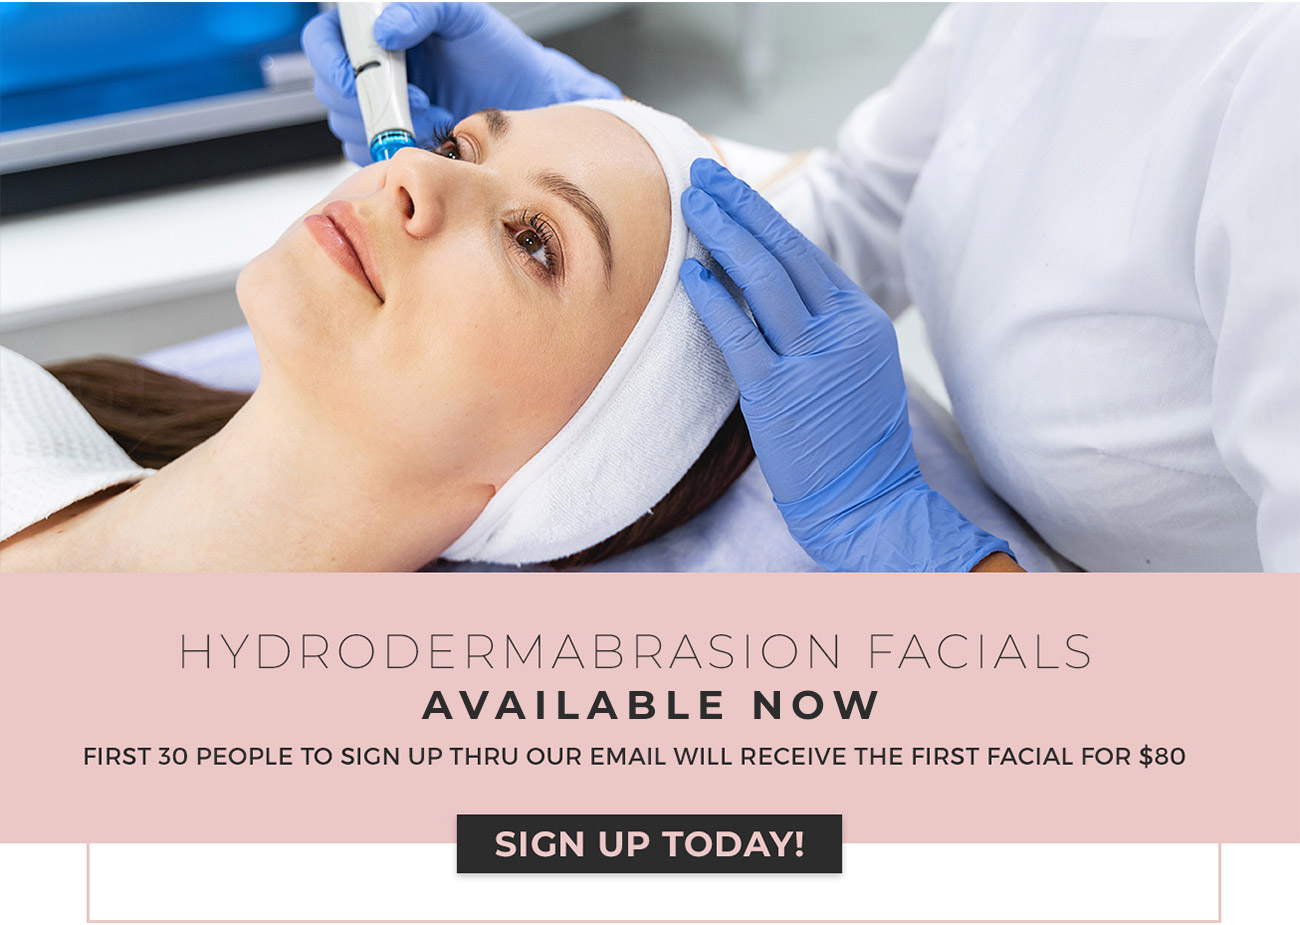 Hydrafacial Available Now! First 30 people to sign up thru our email will receive the first facial for $80